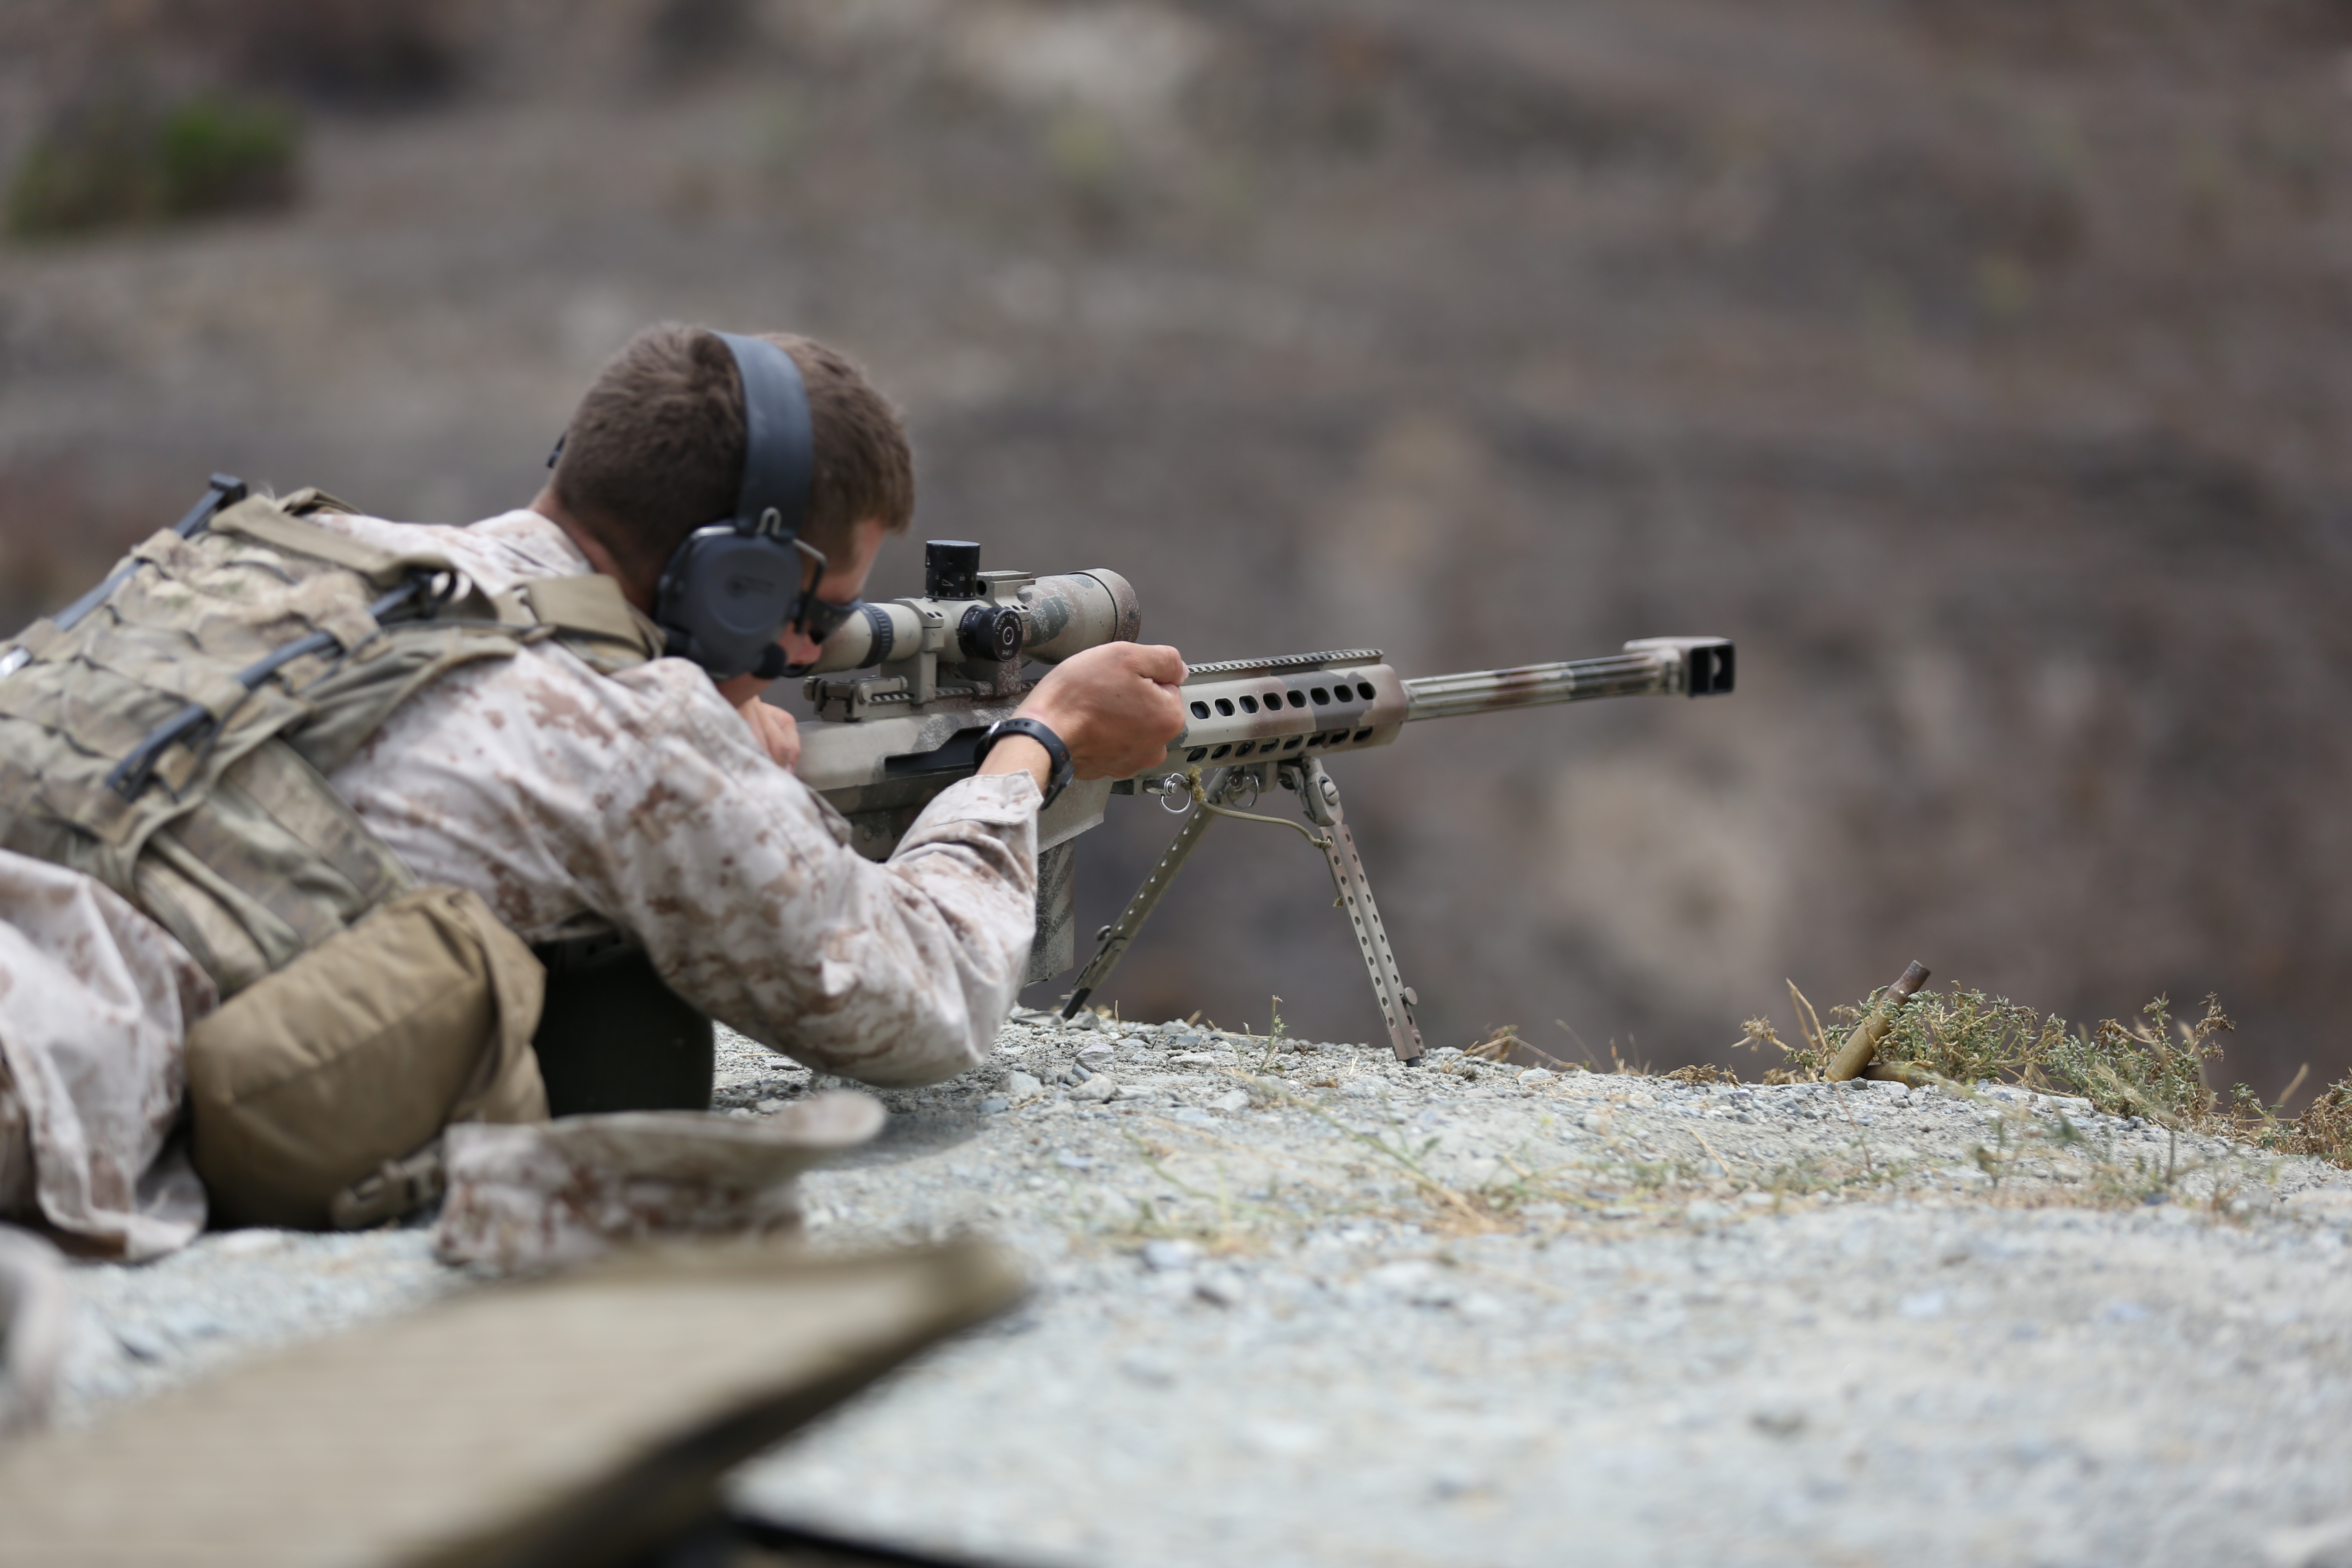 armys long serving sniper rifle - HD5760×3840